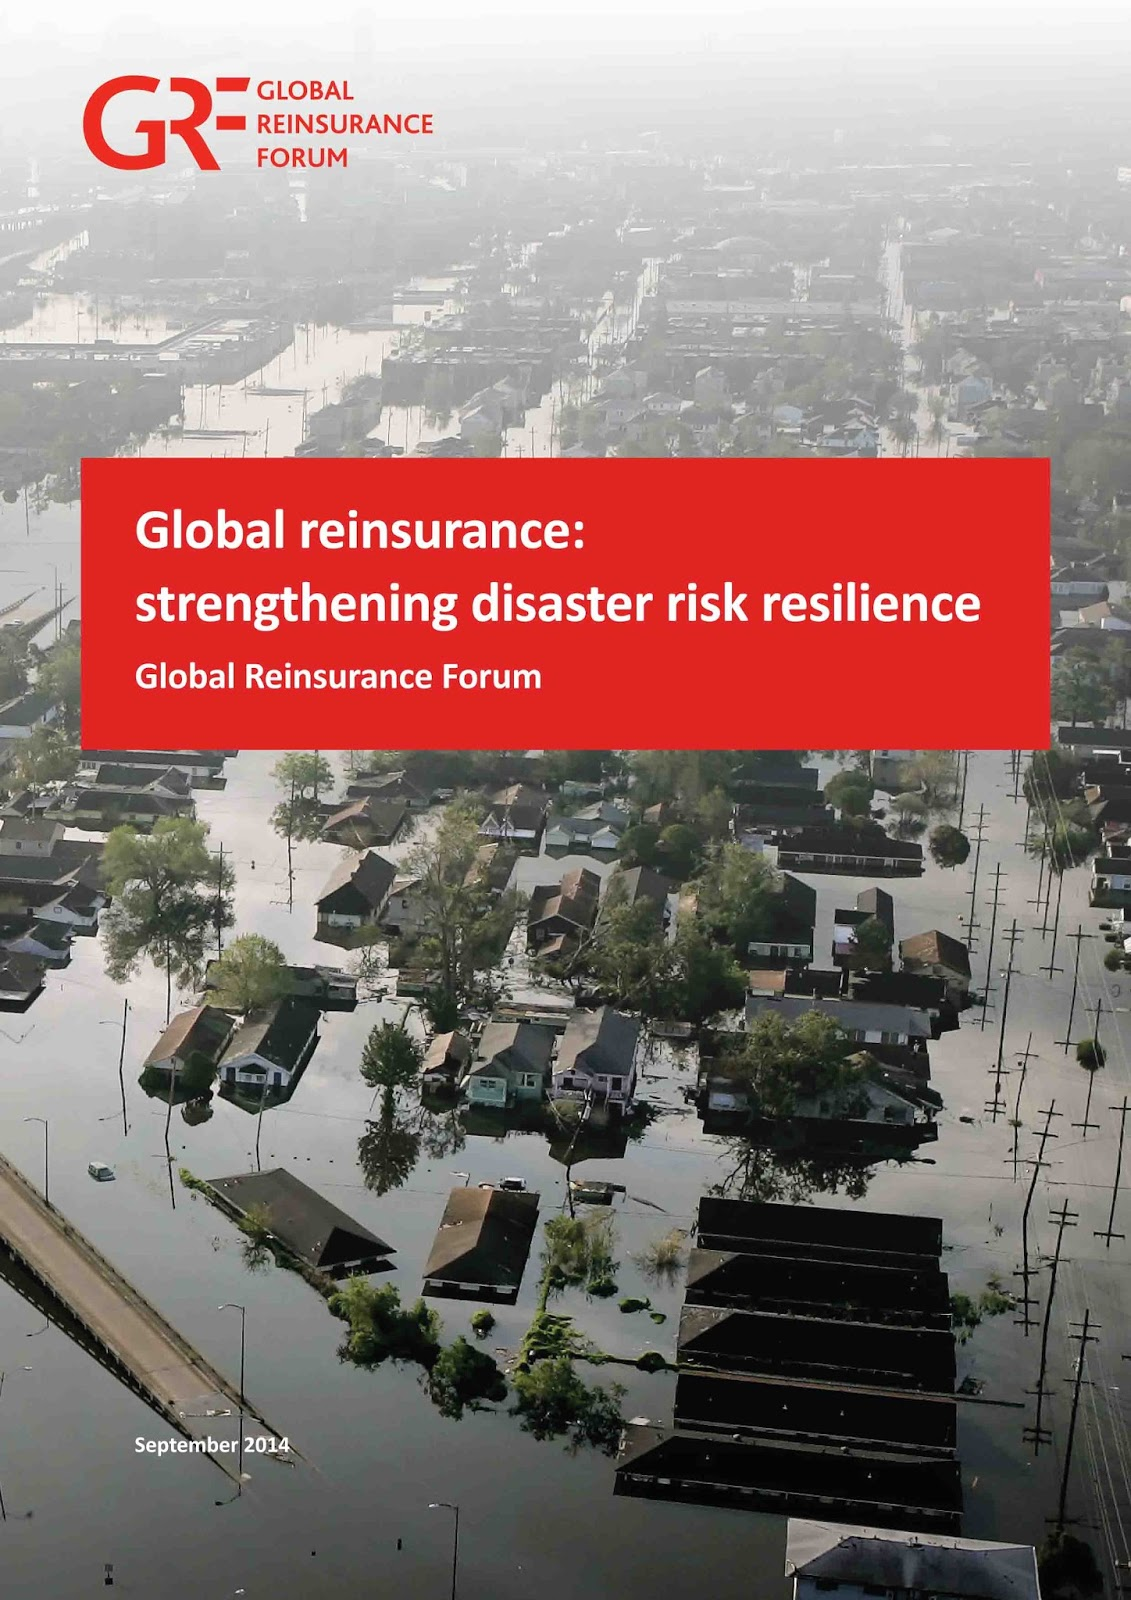 risk and resilience Today's society presents challenging social and natural risks that cannot be addressed through singular approaches to effectively understand these risks, offer relevant policy solutions, and increase our resilience, we must develop innovative approaches that cross disciplinary boundaries.